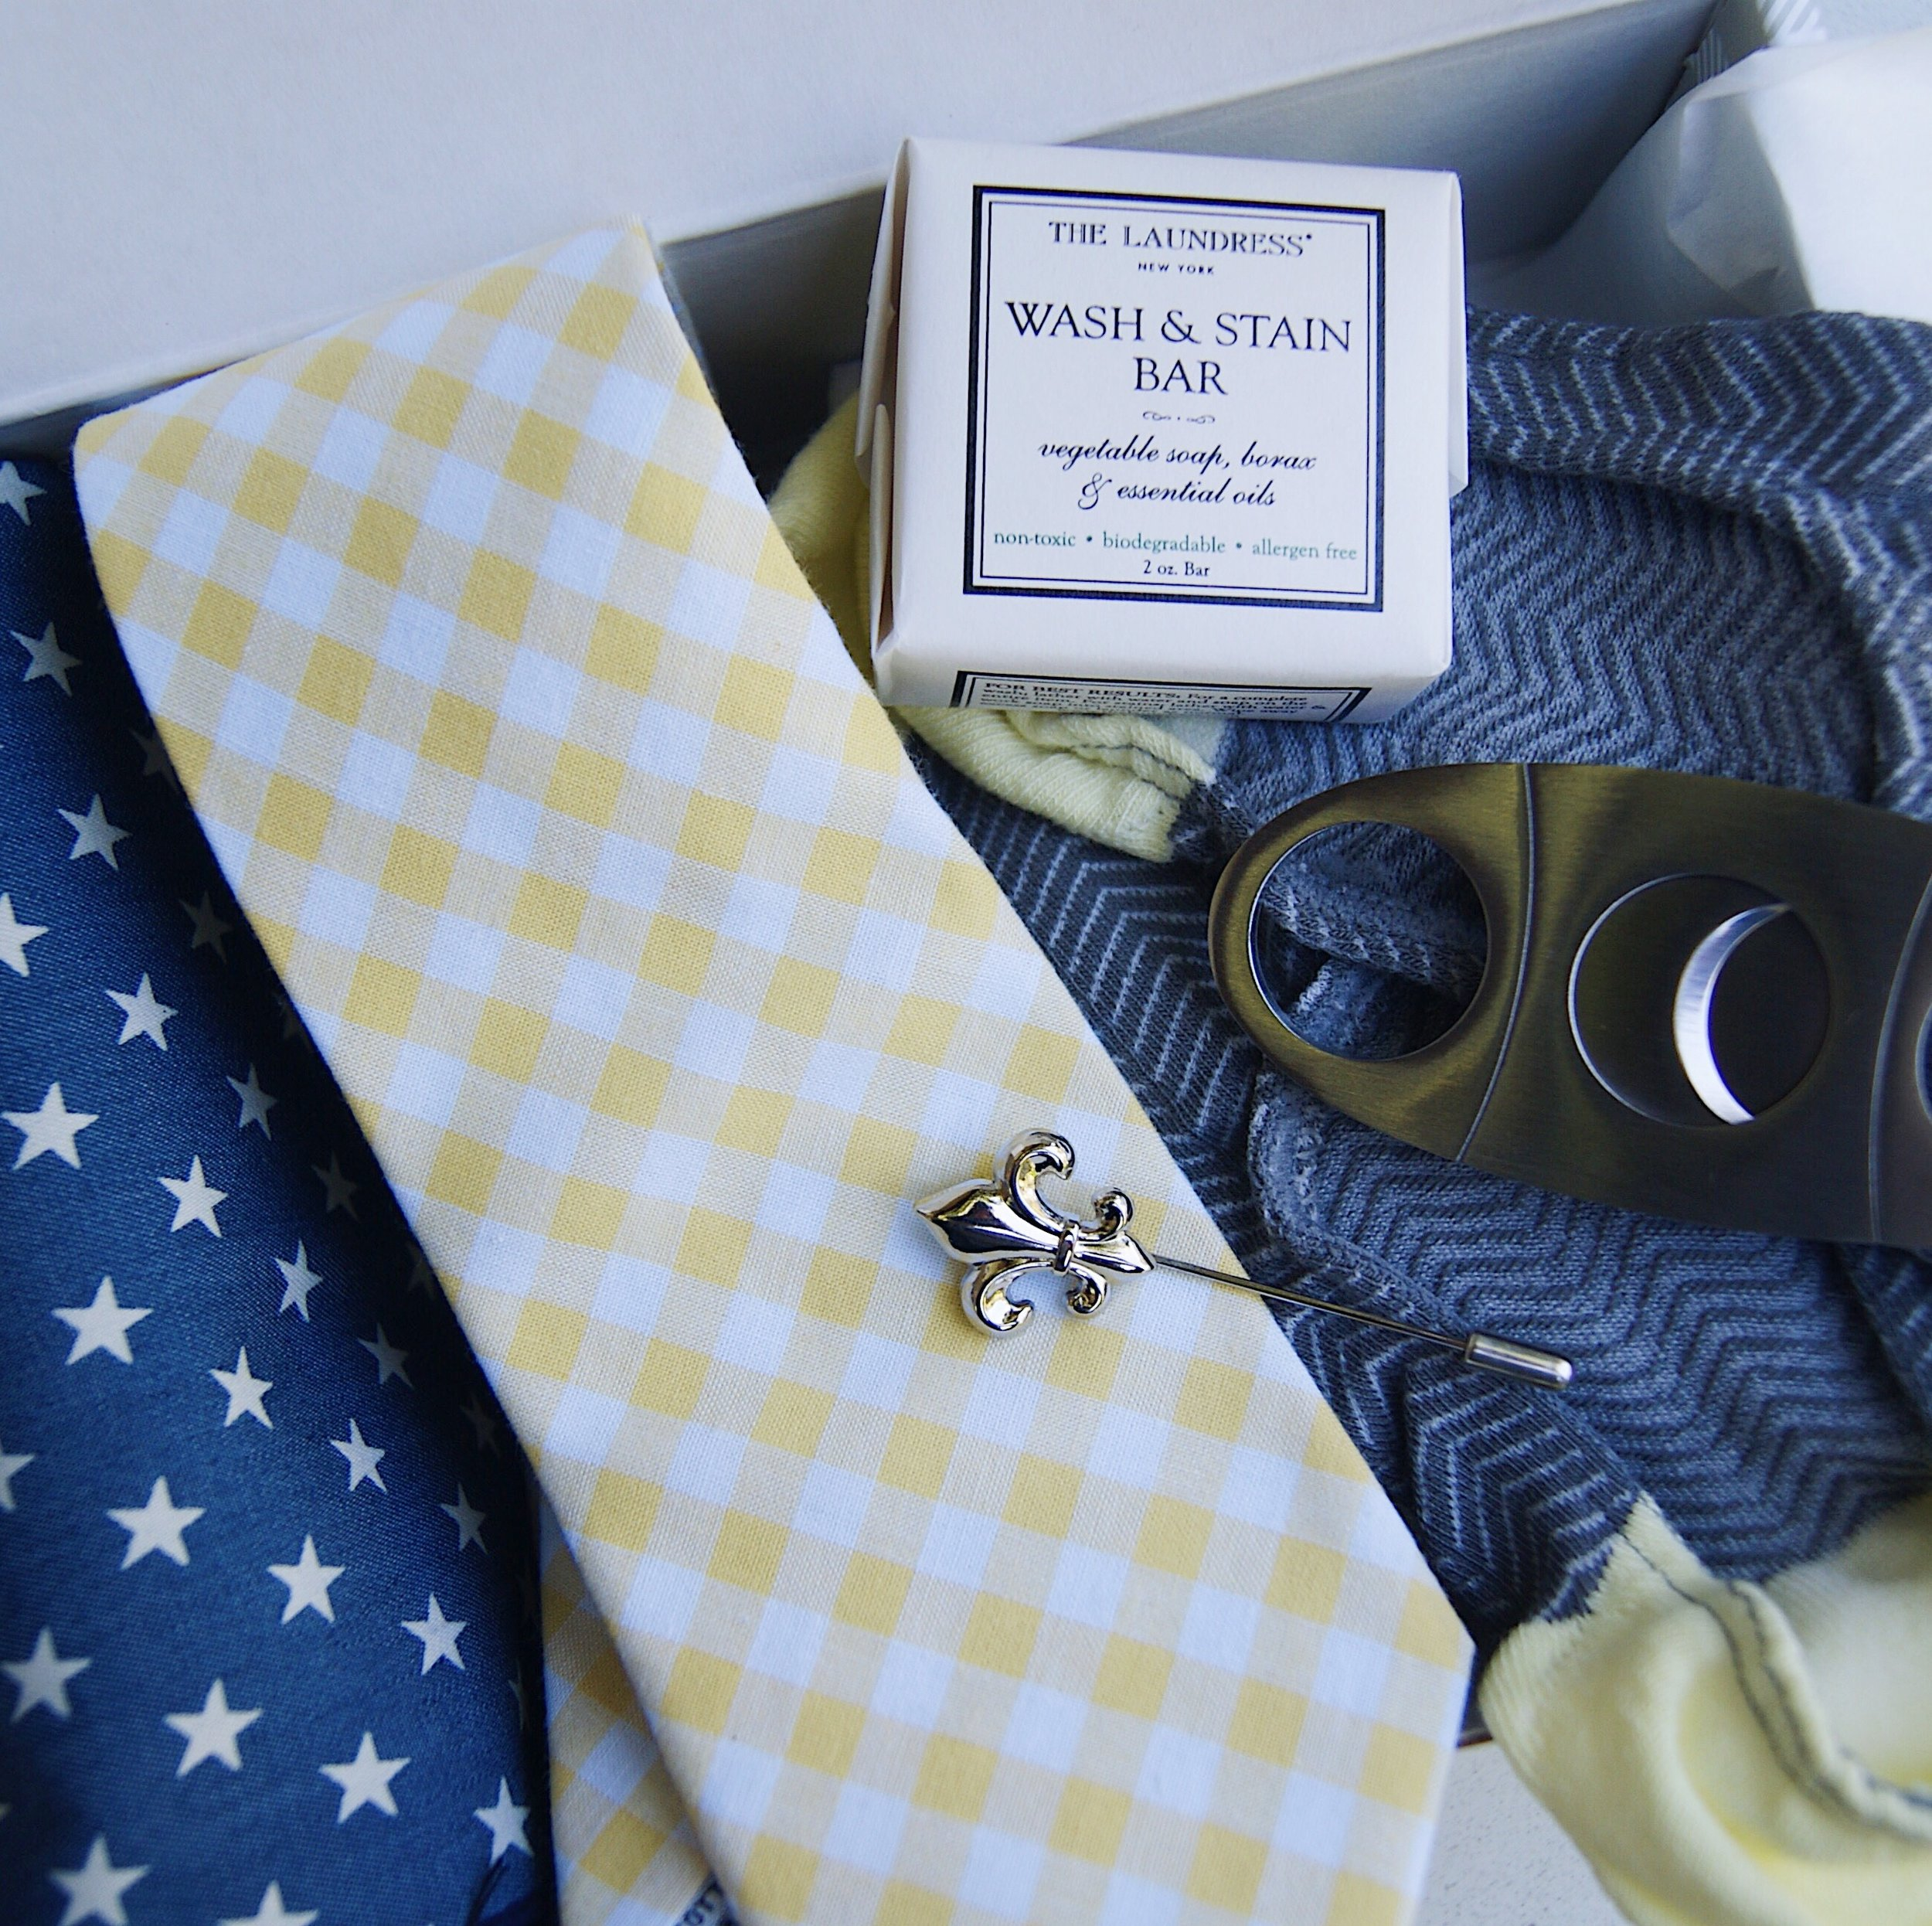 Some Sprezzabox goodies including a tie, pocket square, cigar cutter, pin, and socks.